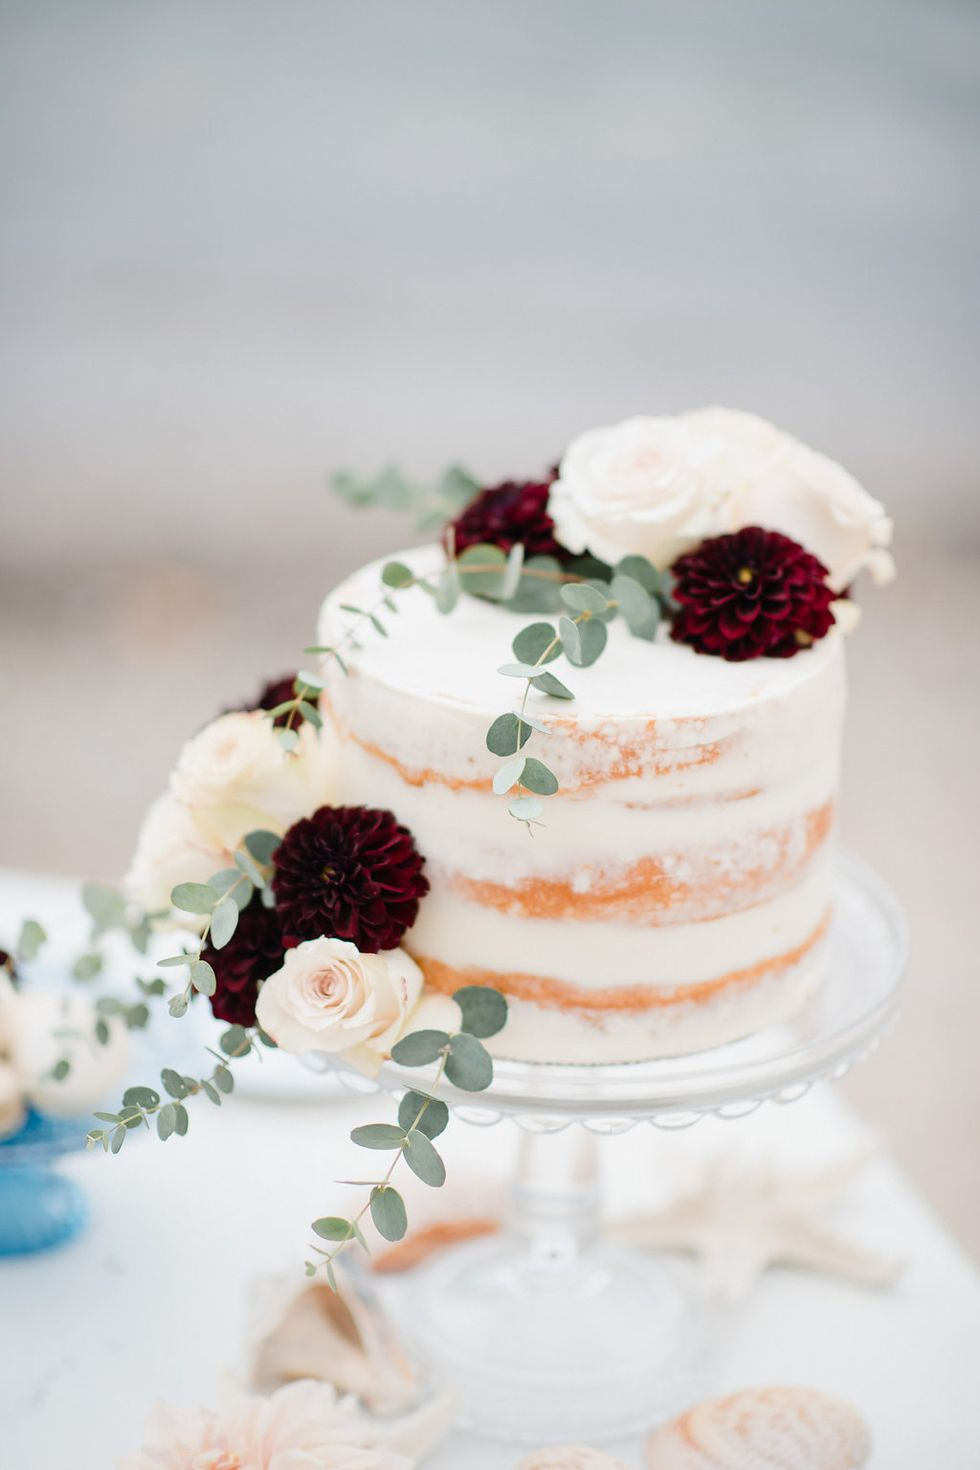 You Ll Fall In Love With These Autumn Wedding Cake Ideas In 2020 Fall Wedding Cakes Fall Themed Wedding Cakes Winter Wedding Cake